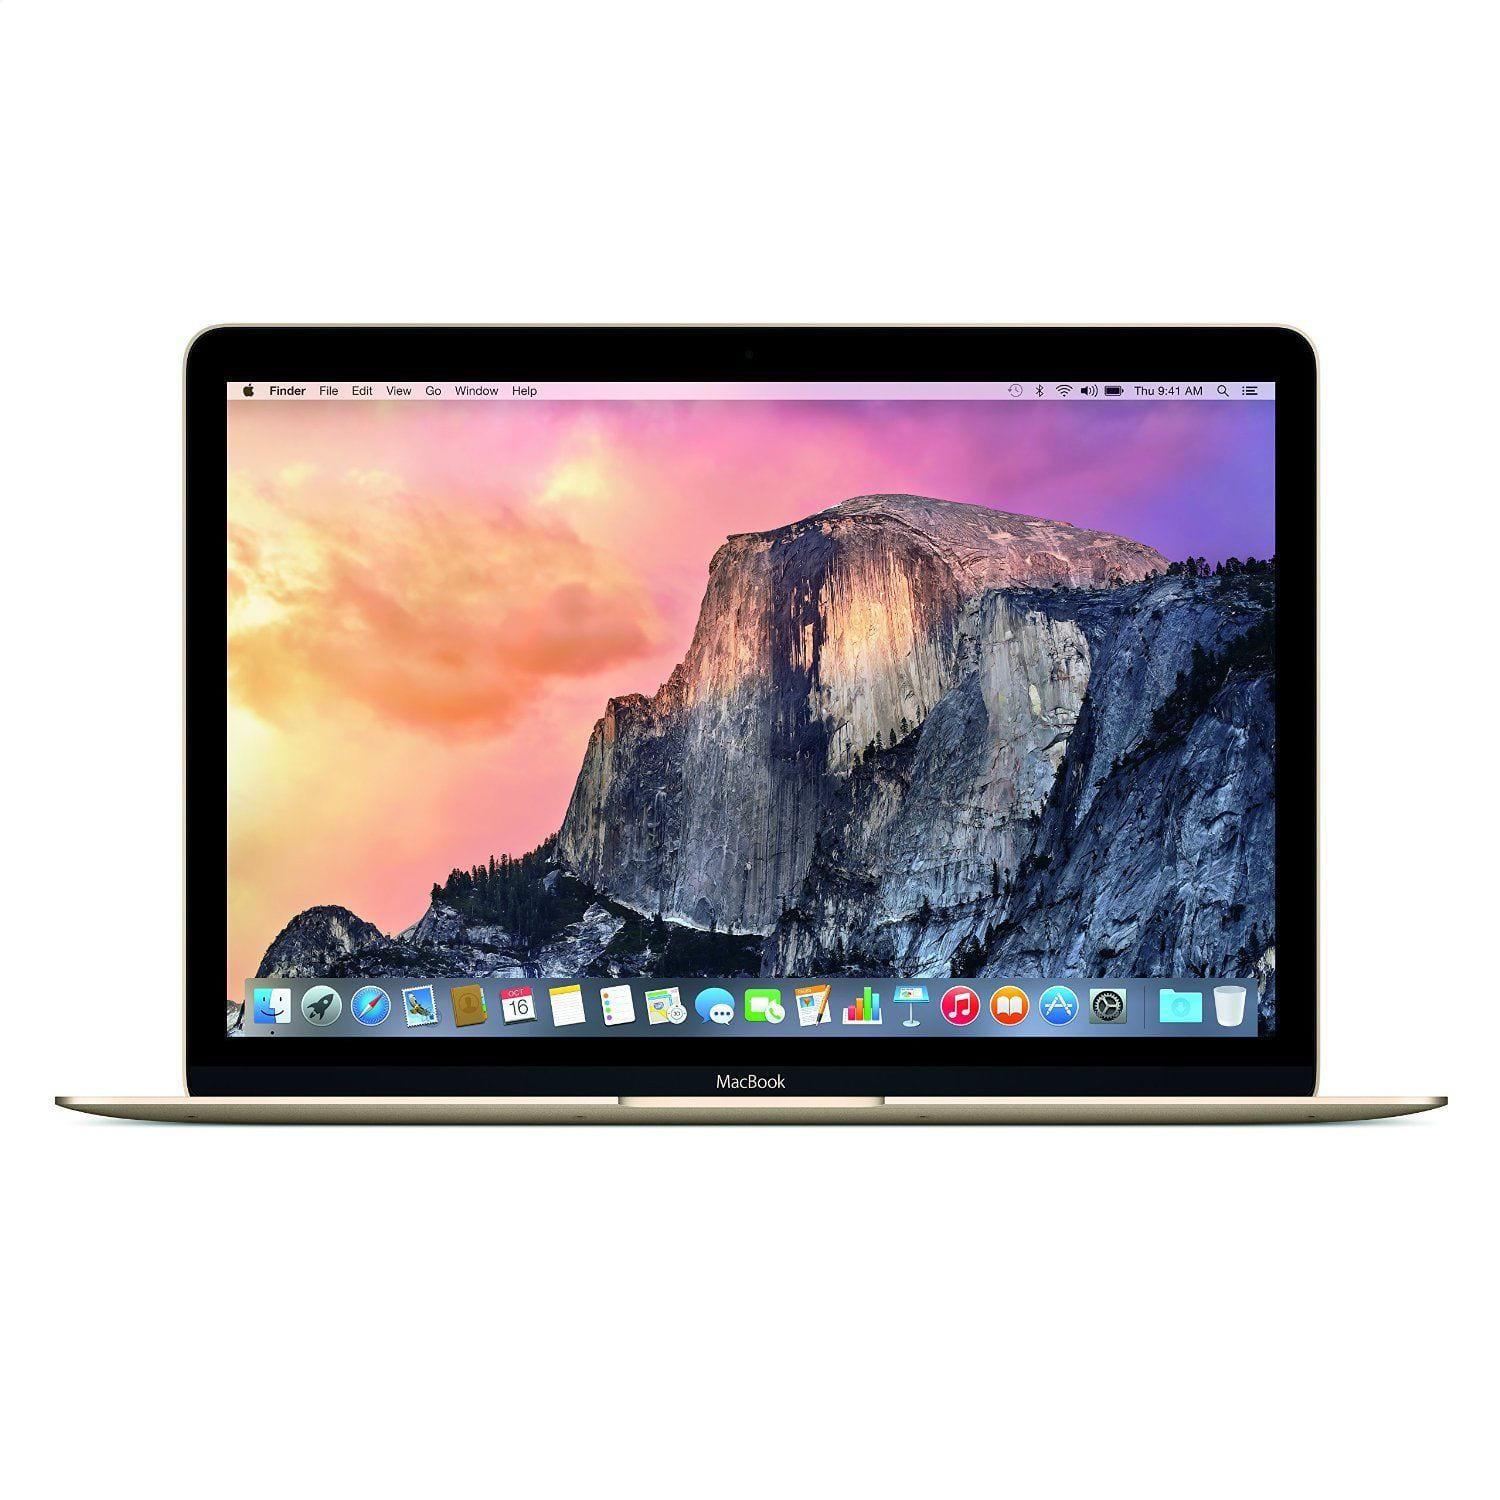 Apple MacBook12-Inch Laptop with Retina Display 256GB SSD $1149 + Free Shipping (eBay Daily Deal)